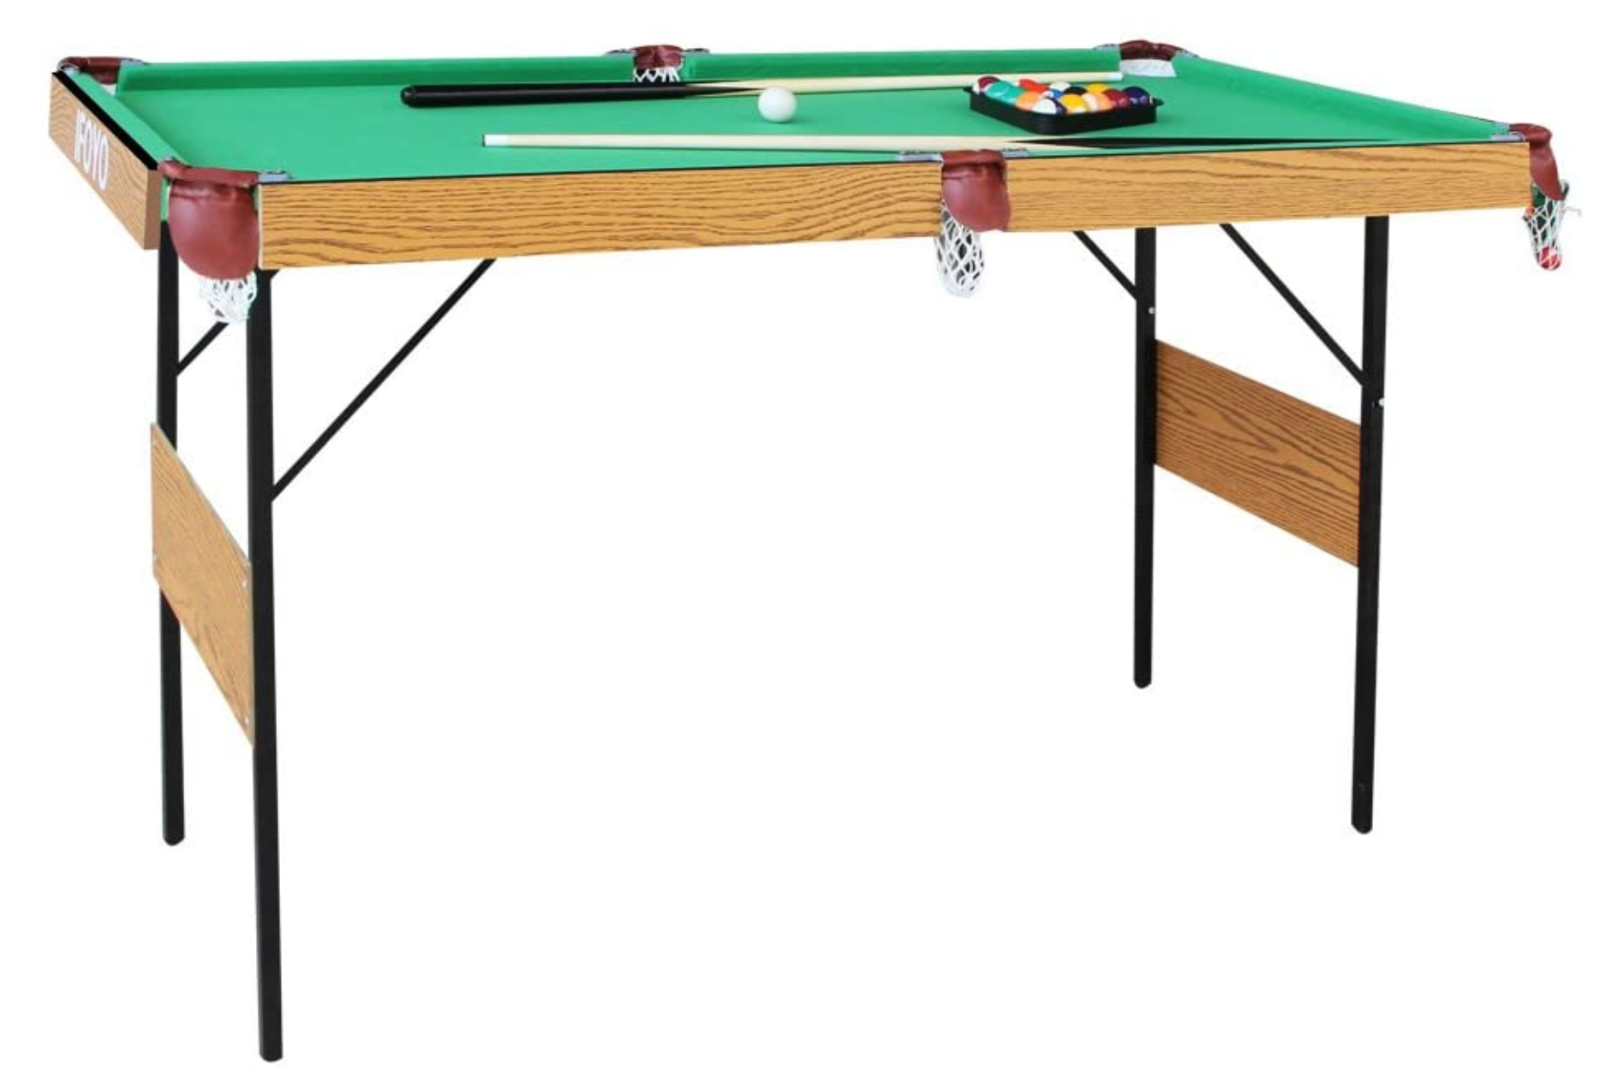 NEW Pool Table Folding Pool Snooker Table Billiard Table Garage Games Toys Gifts